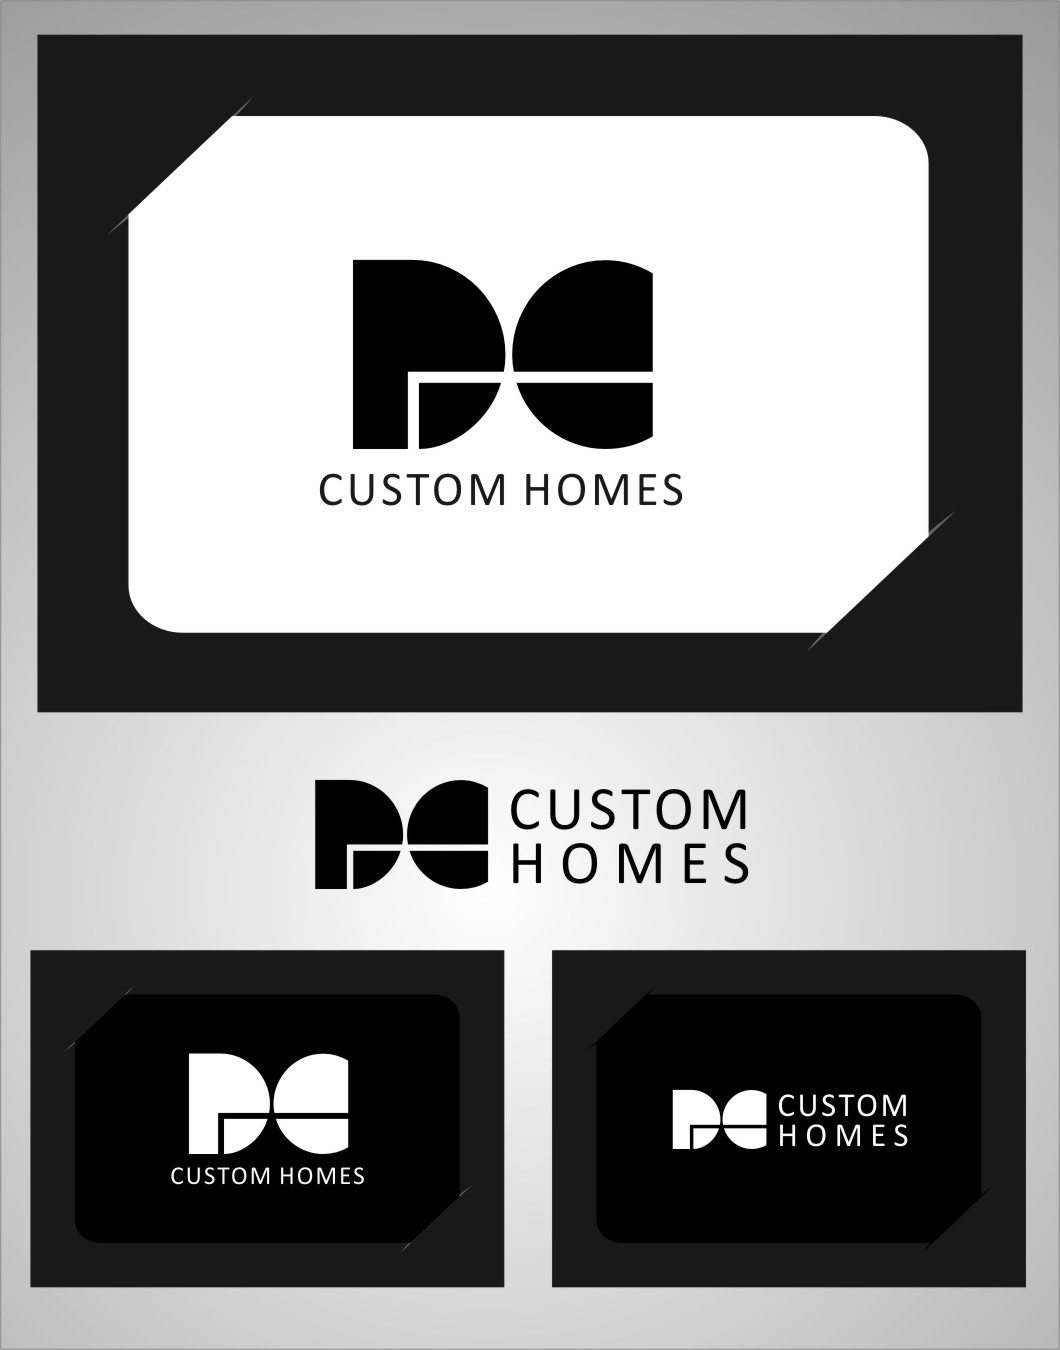 Logo Design by Ngepet_art - Entry No. 261 in the Logo Design Contest Creative Logo Design for DC Custom Homes.